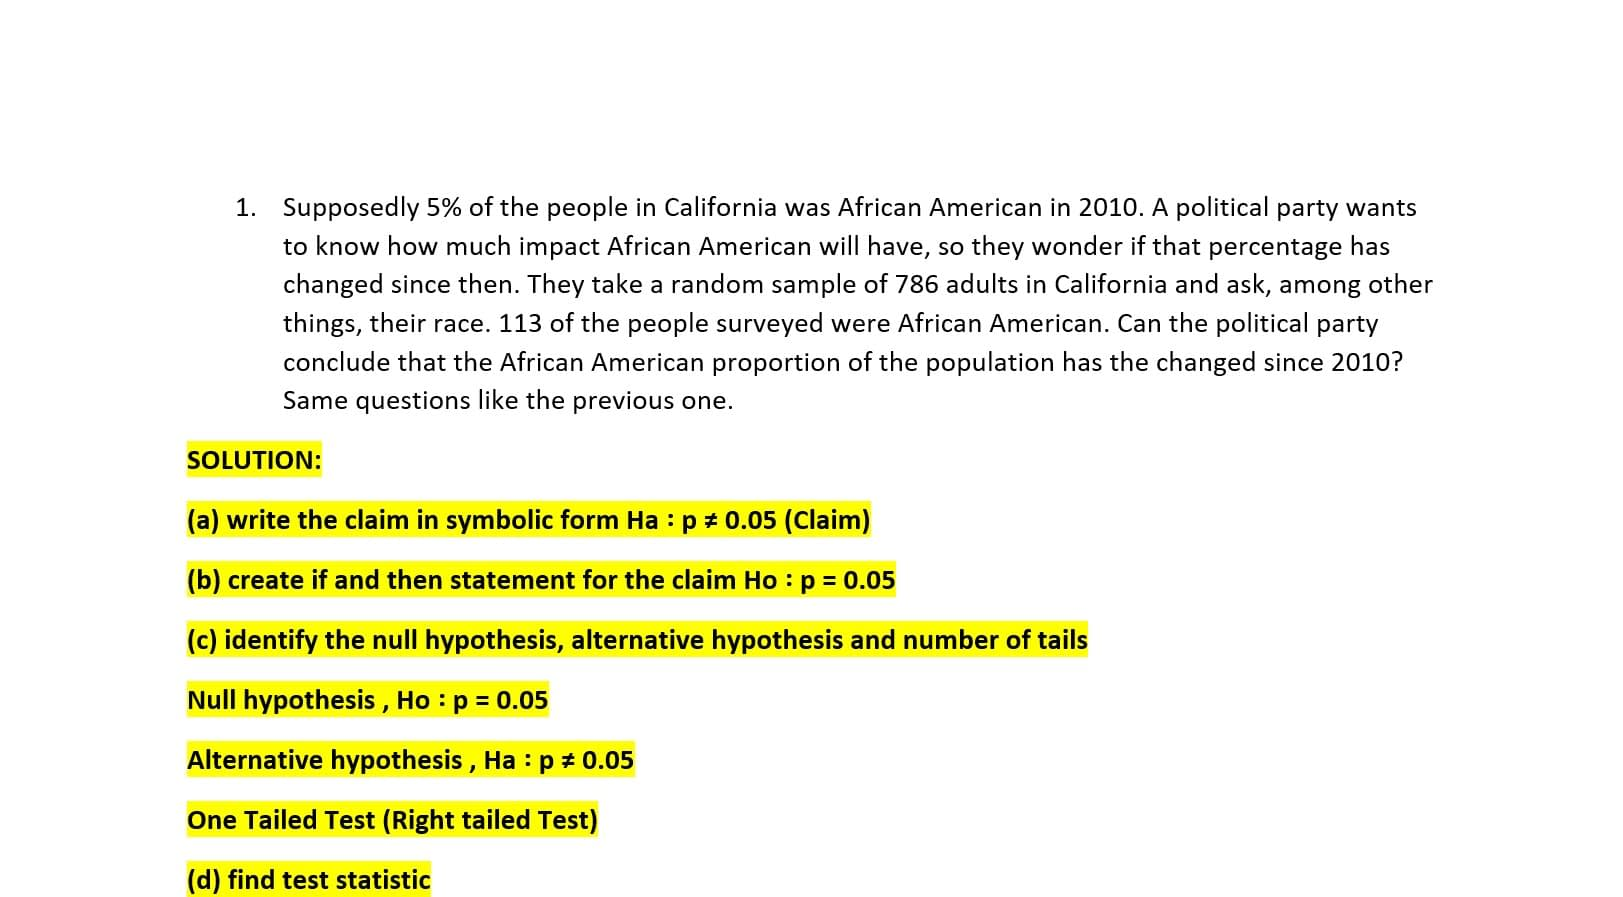 Supposedly 5% of the people in California 6